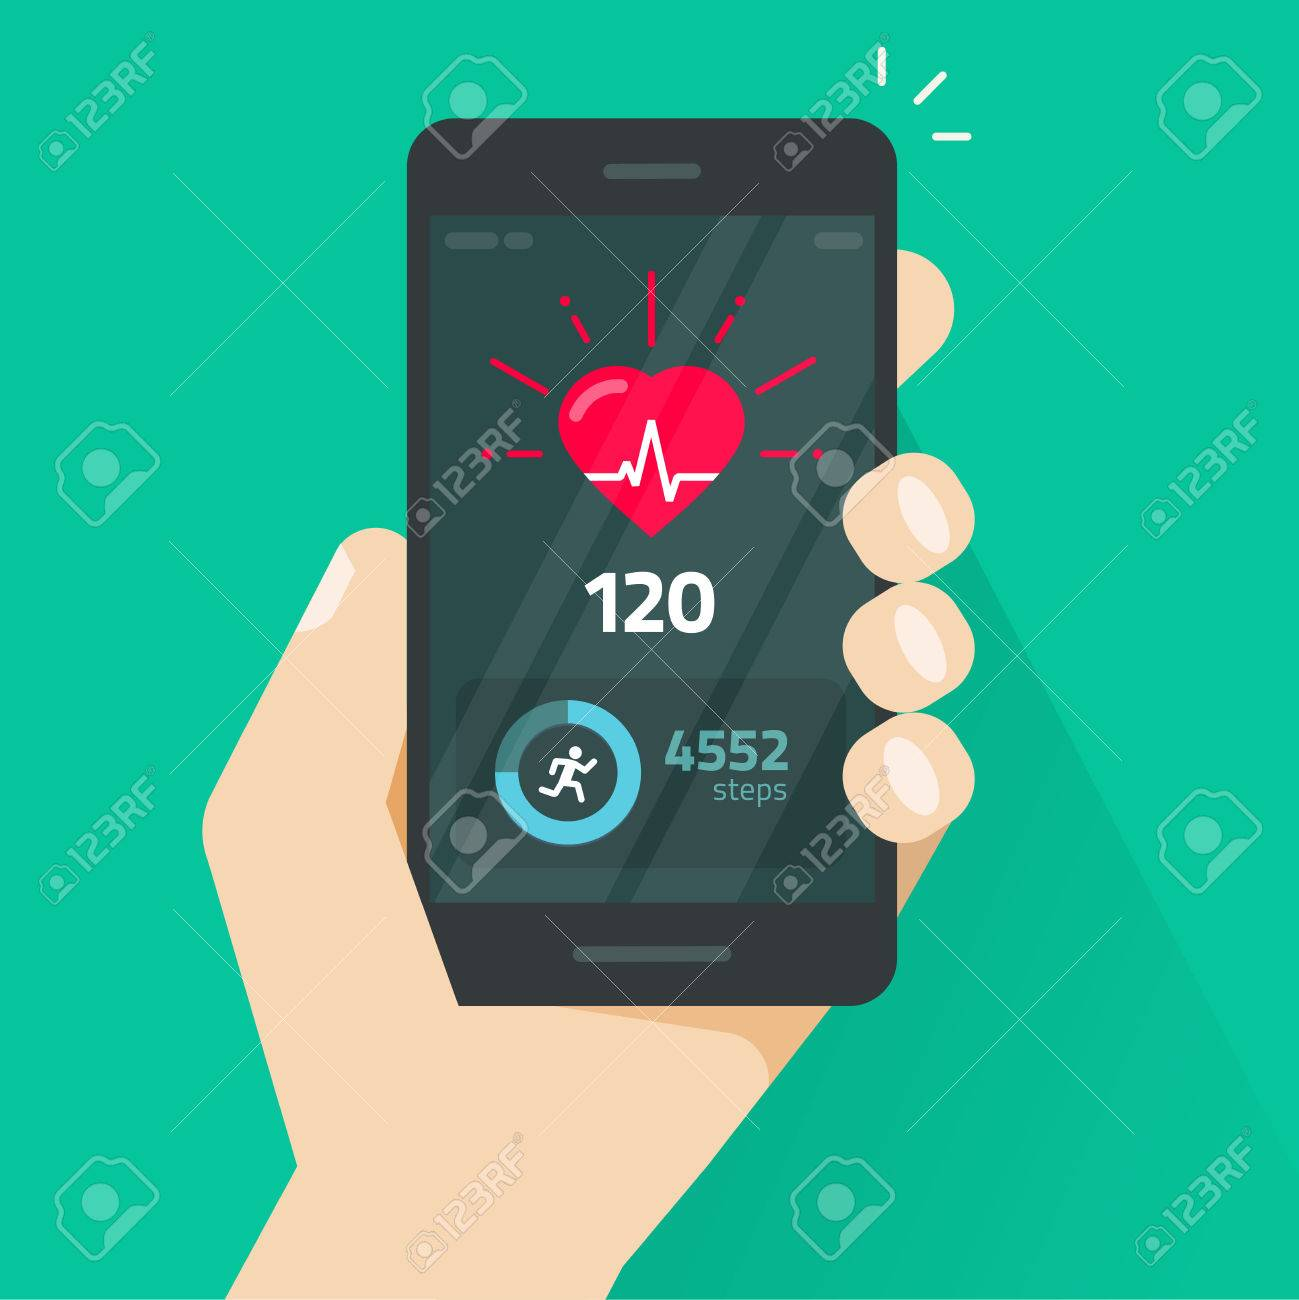 Heartbeat indicator on mobile phone screen, pulse meter with heart beat and running activity information, fitness health app on cellphone and walking steps counter vector illustration - 80568350